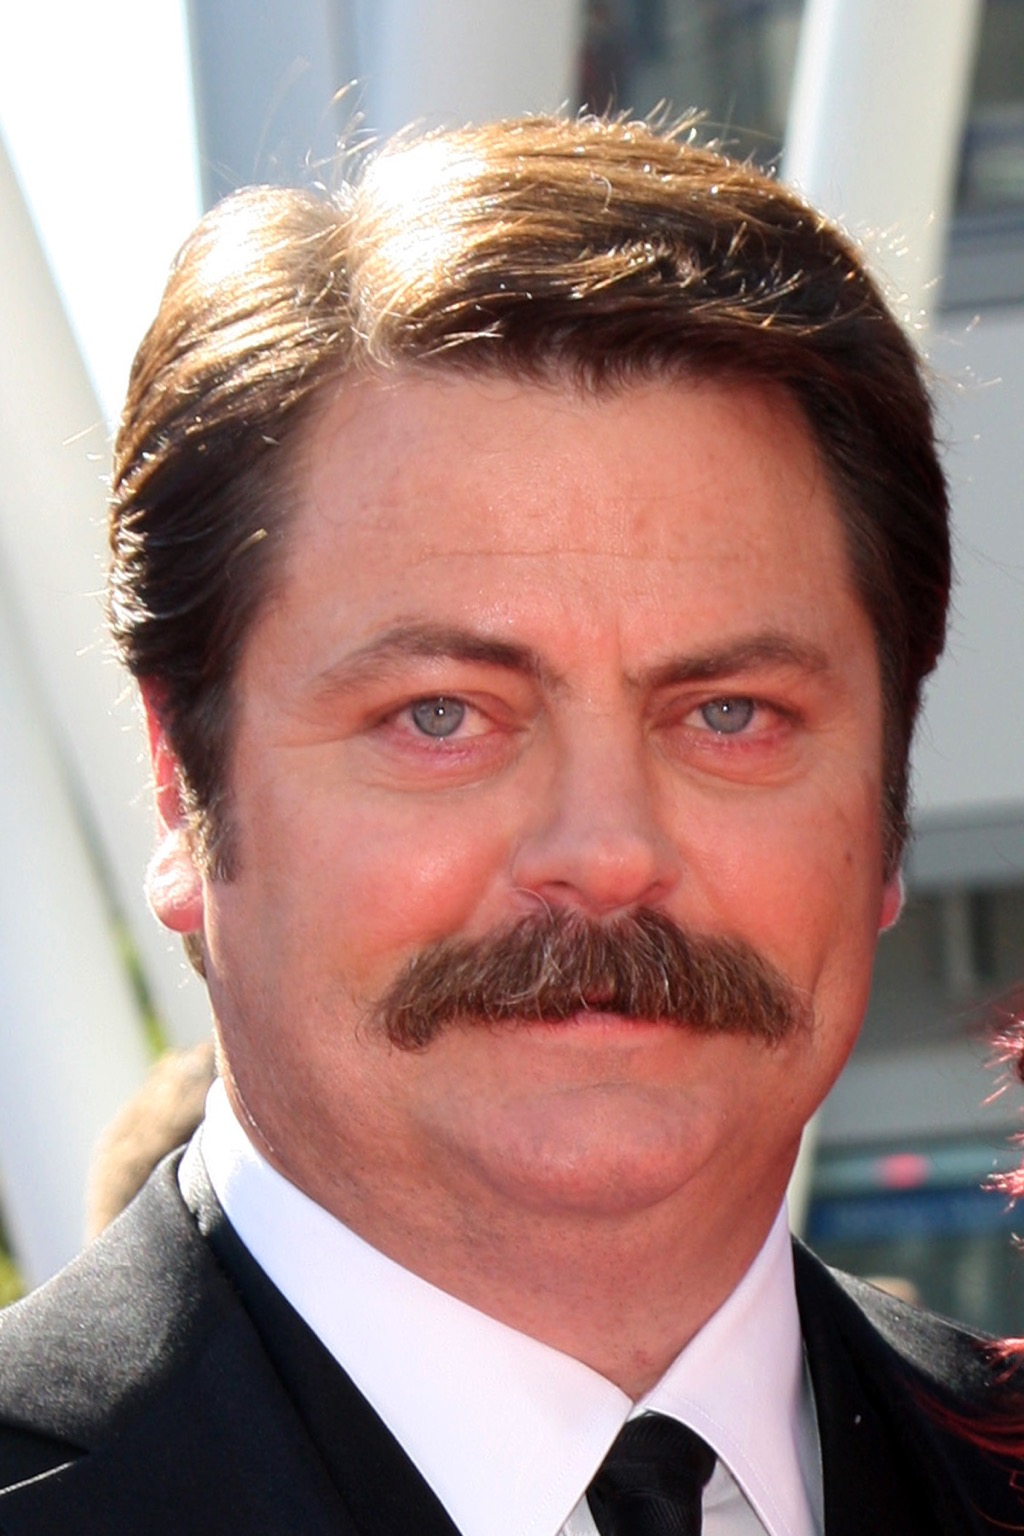 Nick Offerman made a hilarious PSA for Movemember